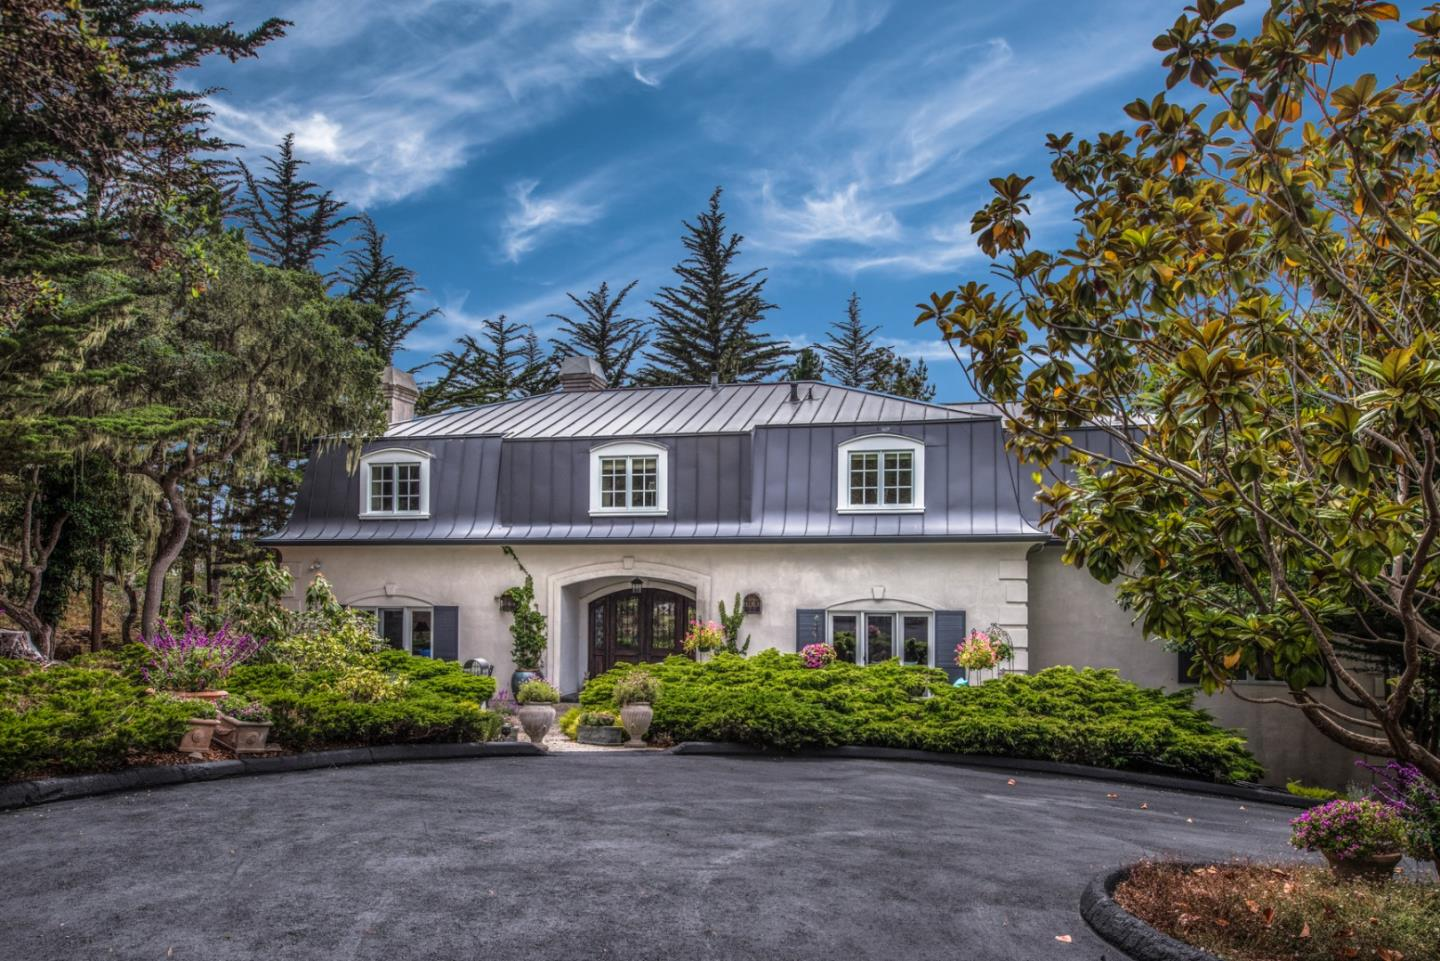 1138 Portola Road - Pebble Beach, California